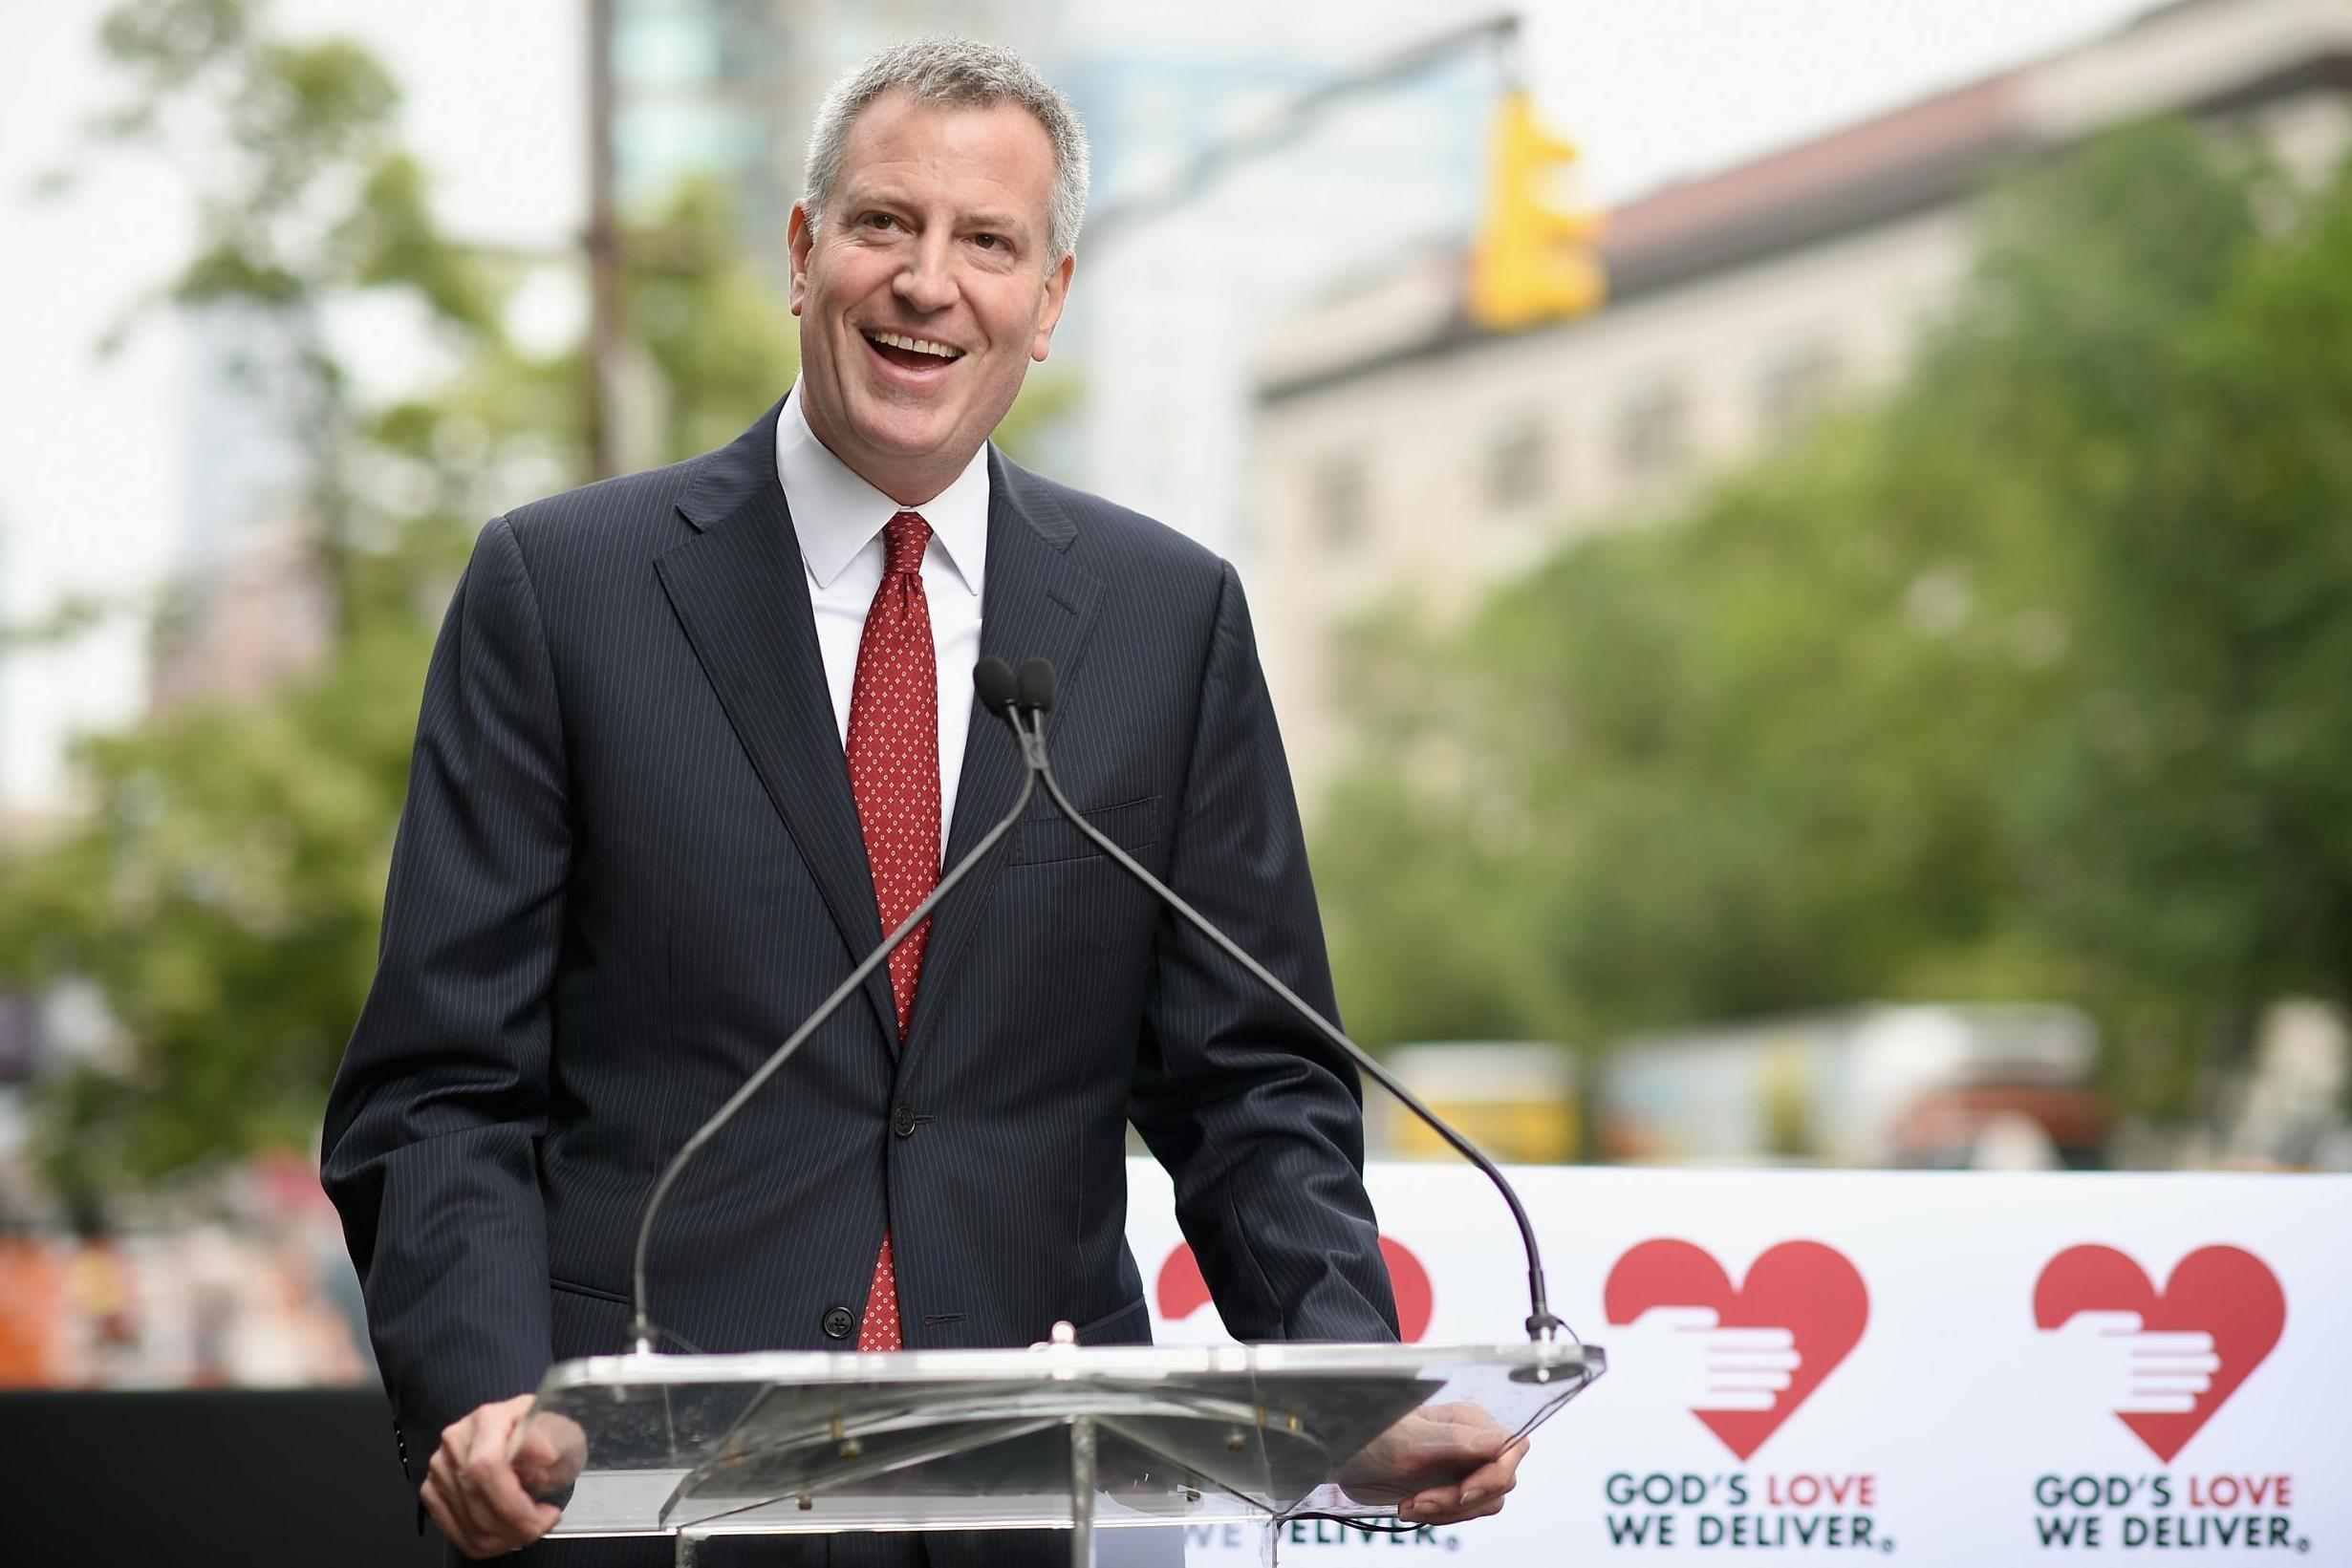 Bill de Blasio shares bagel order before deleting it amid widespread…